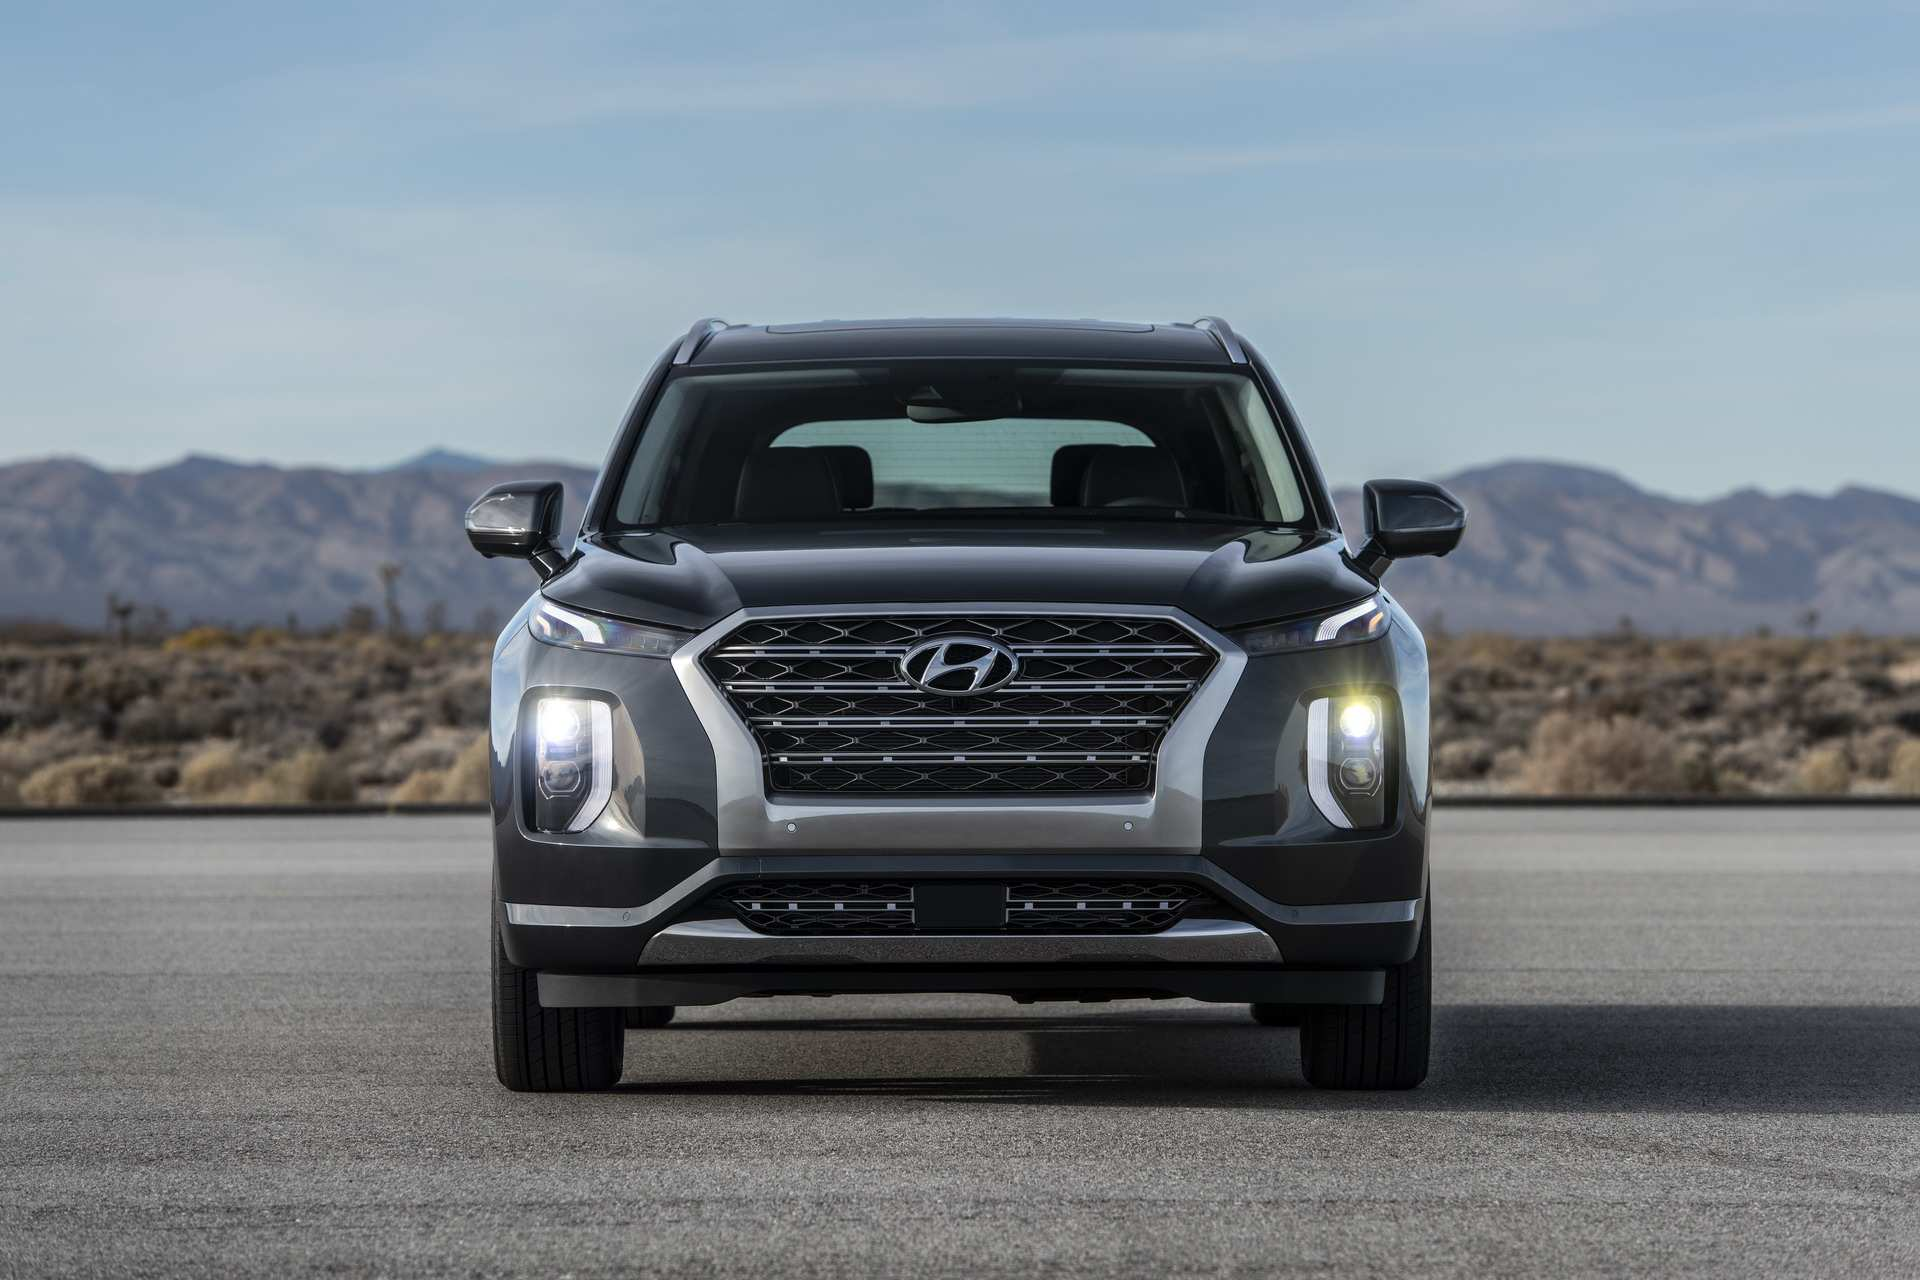 33 New Hyundai Full Size Suv 2020 Ratings for Hyundai Full Size Suv 2020